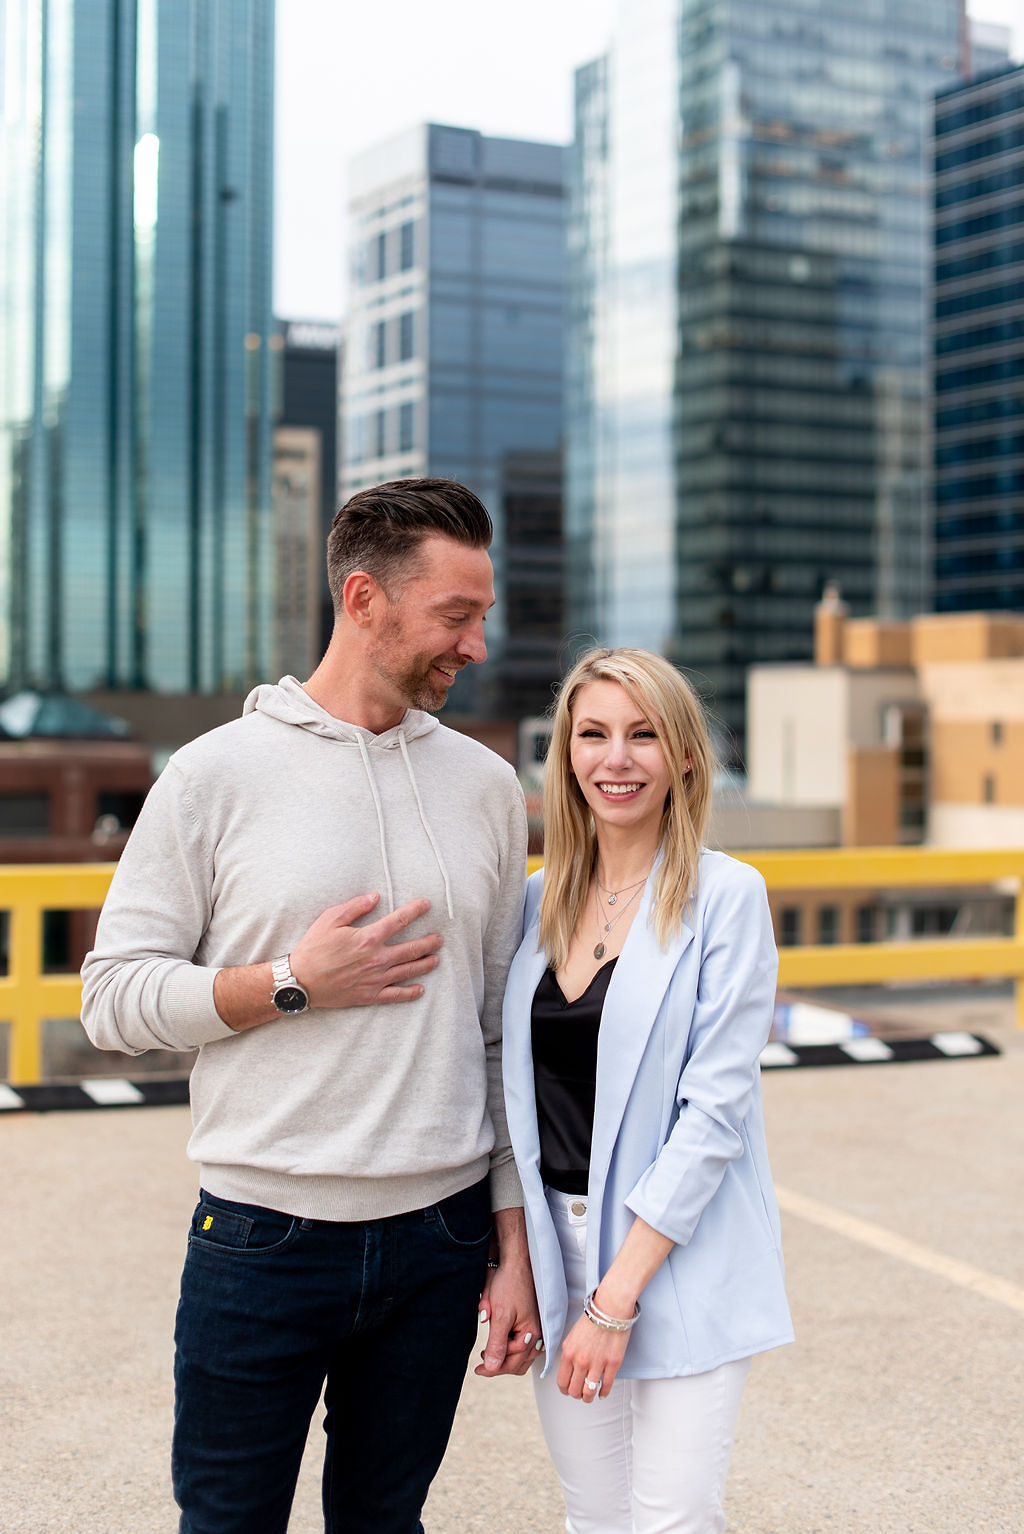 Edmonton Alberta rooftop proposal with the Edmonton downtown skyline in the background